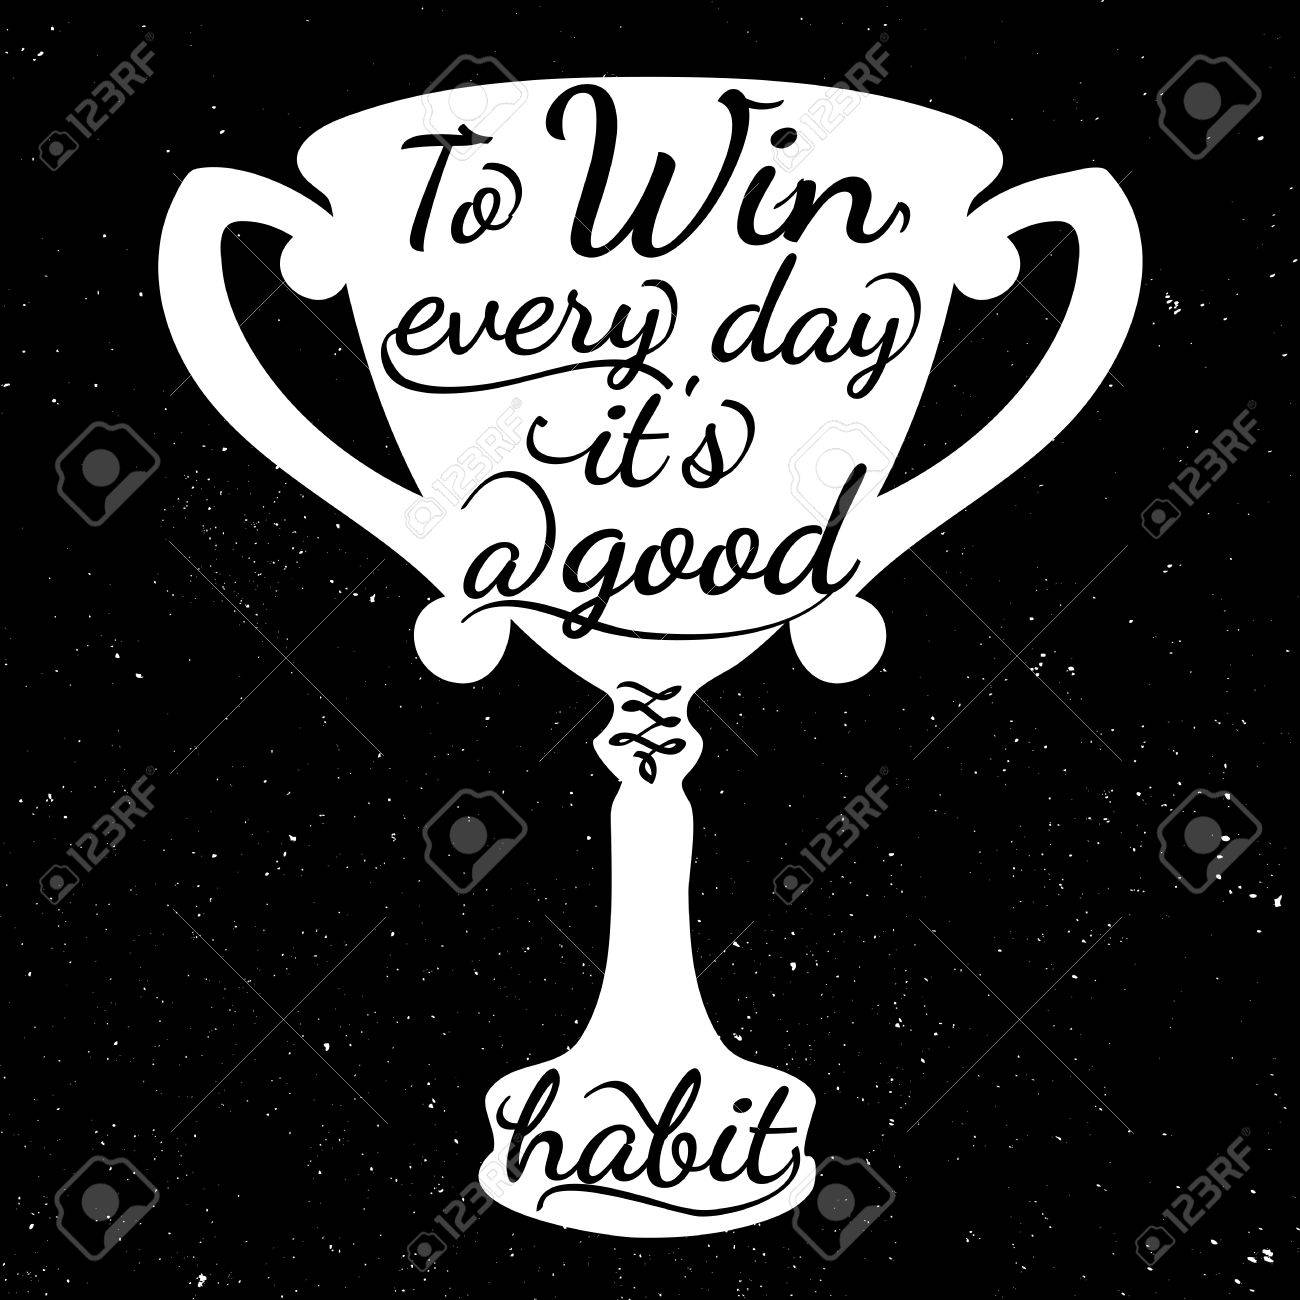 Black and white motivational posters  Trophy cup in vintage style